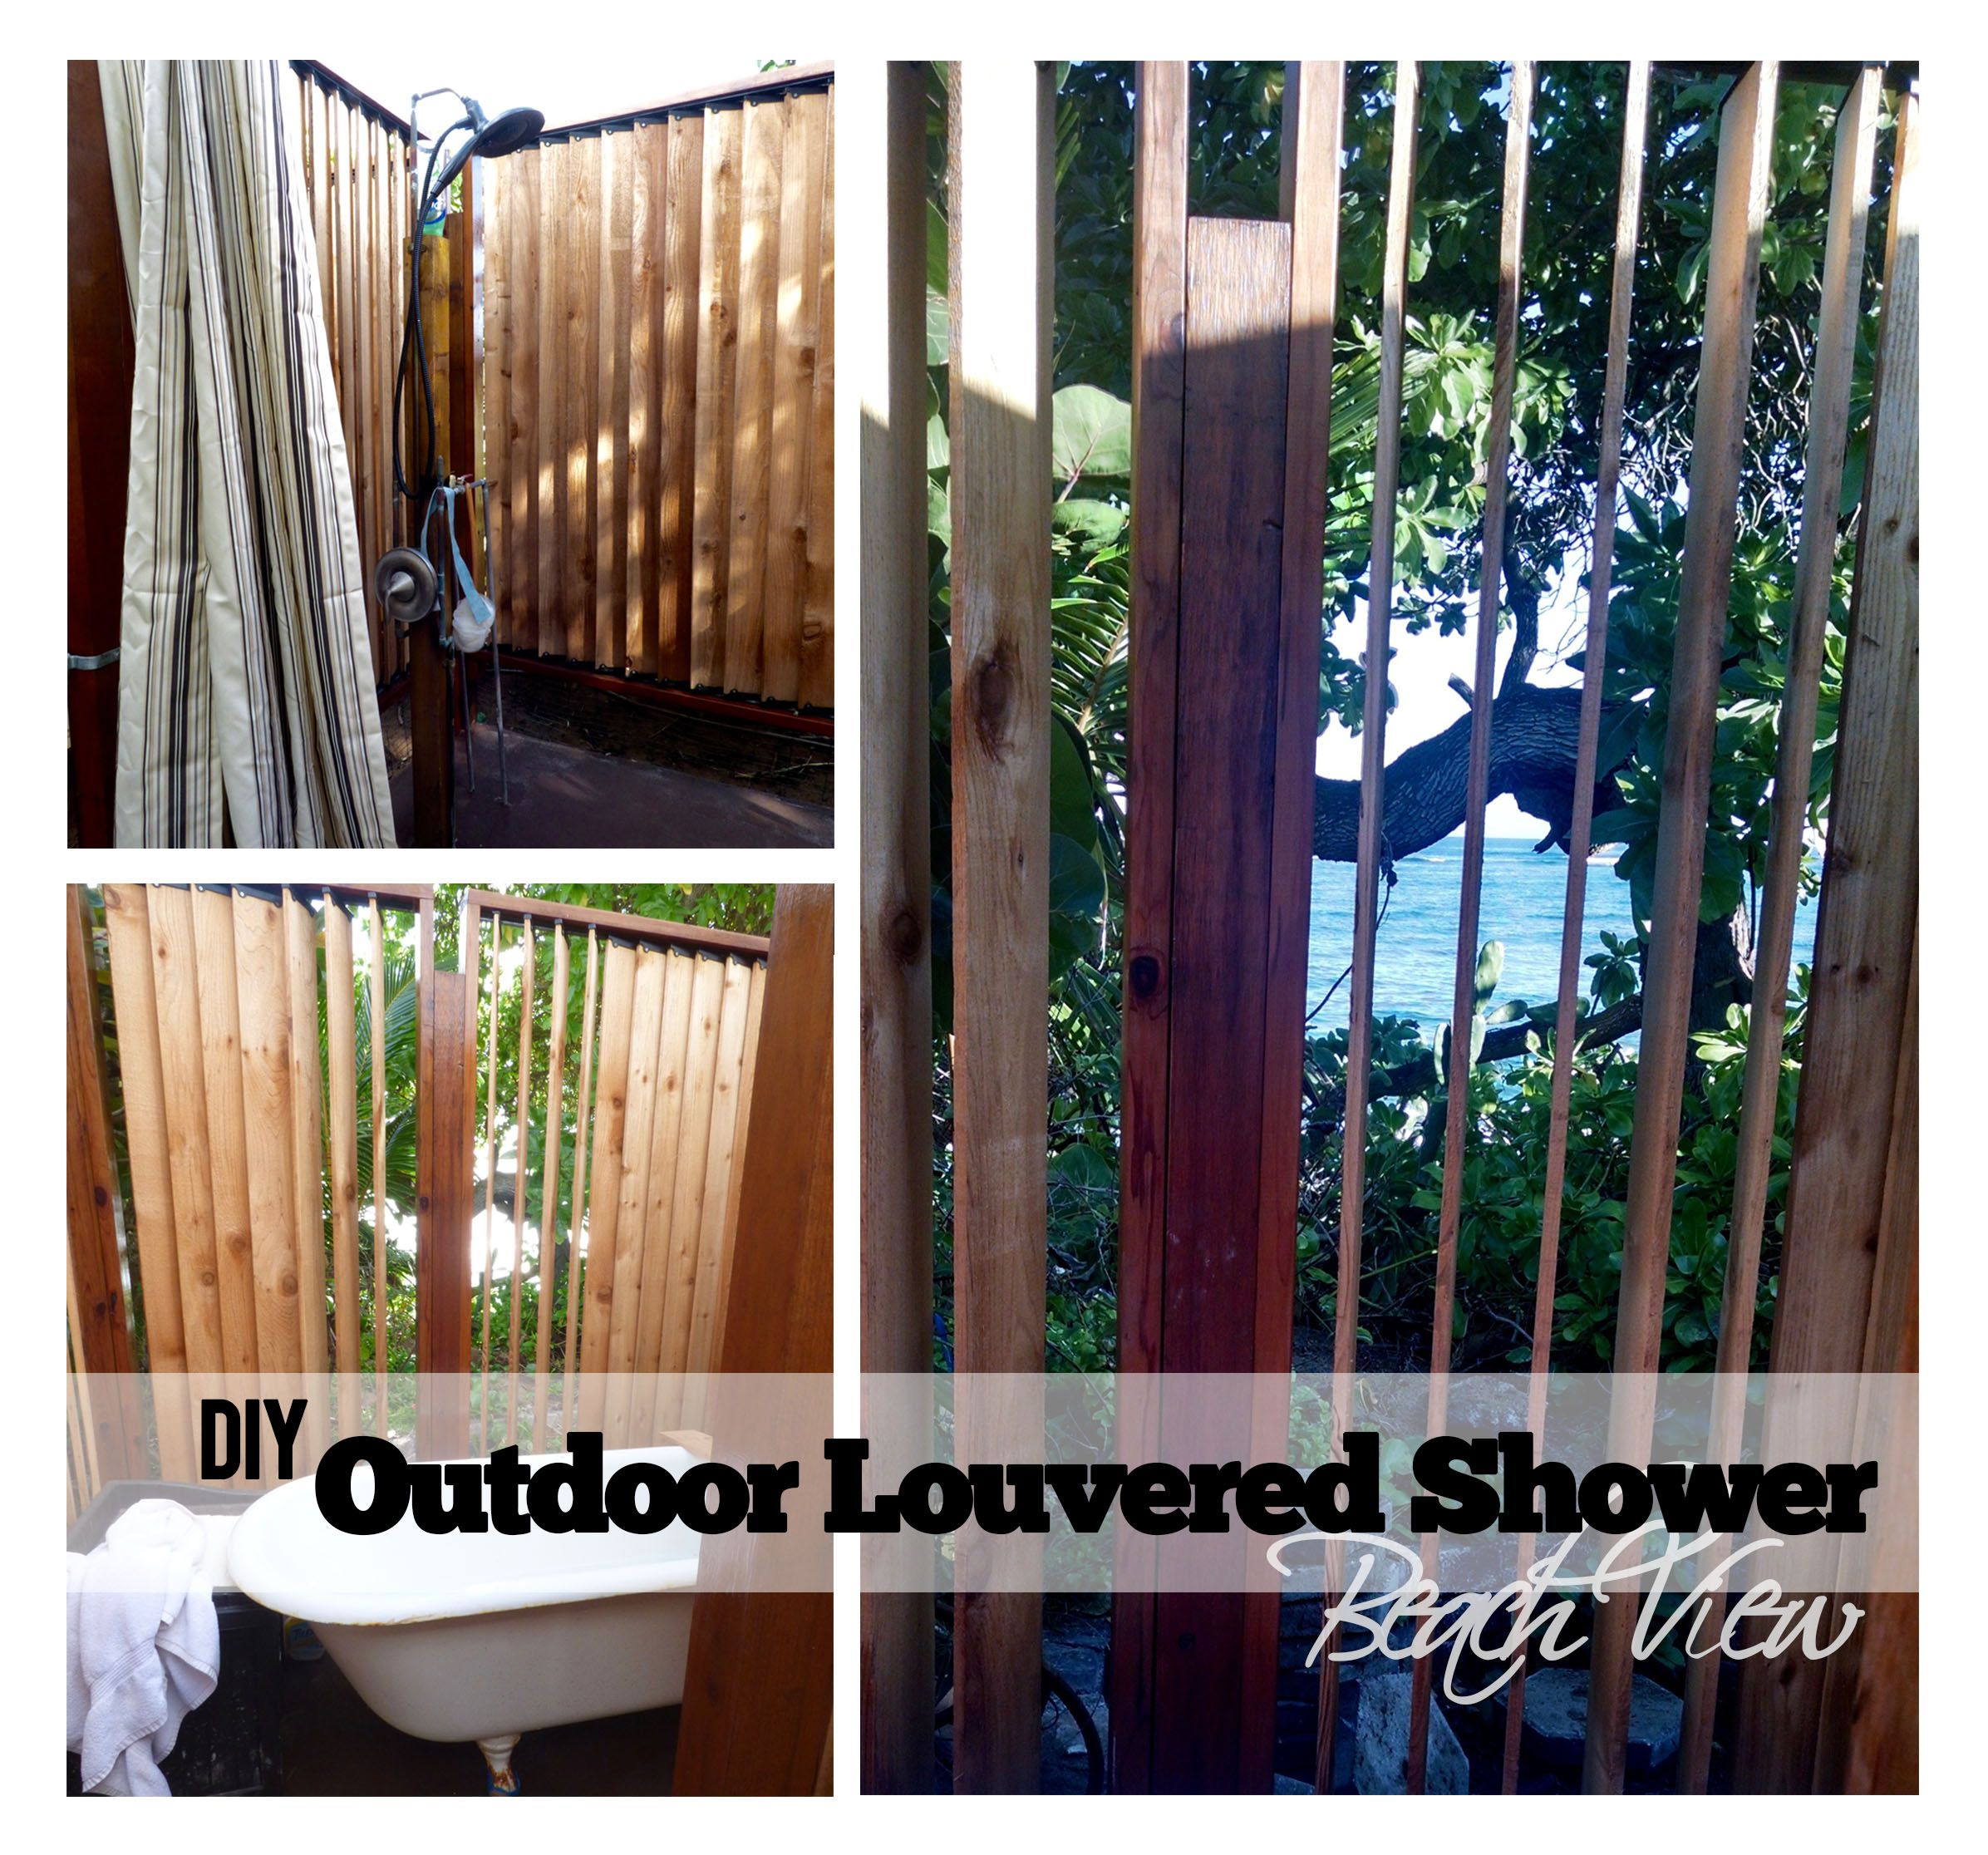 diy outdoor louvered shower, perfect for a backyard with a beach